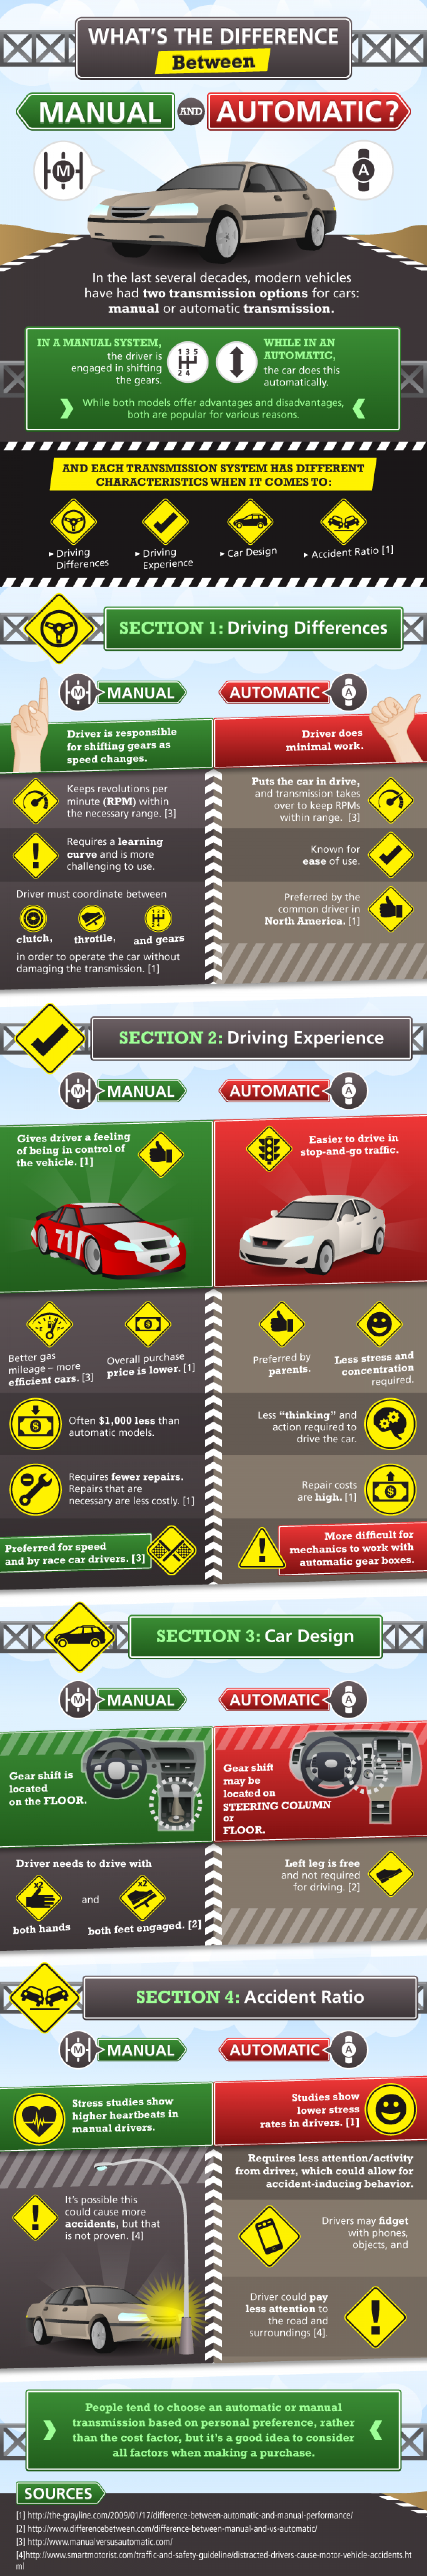 What's The Difference Between Manual And Automatic? Infographic